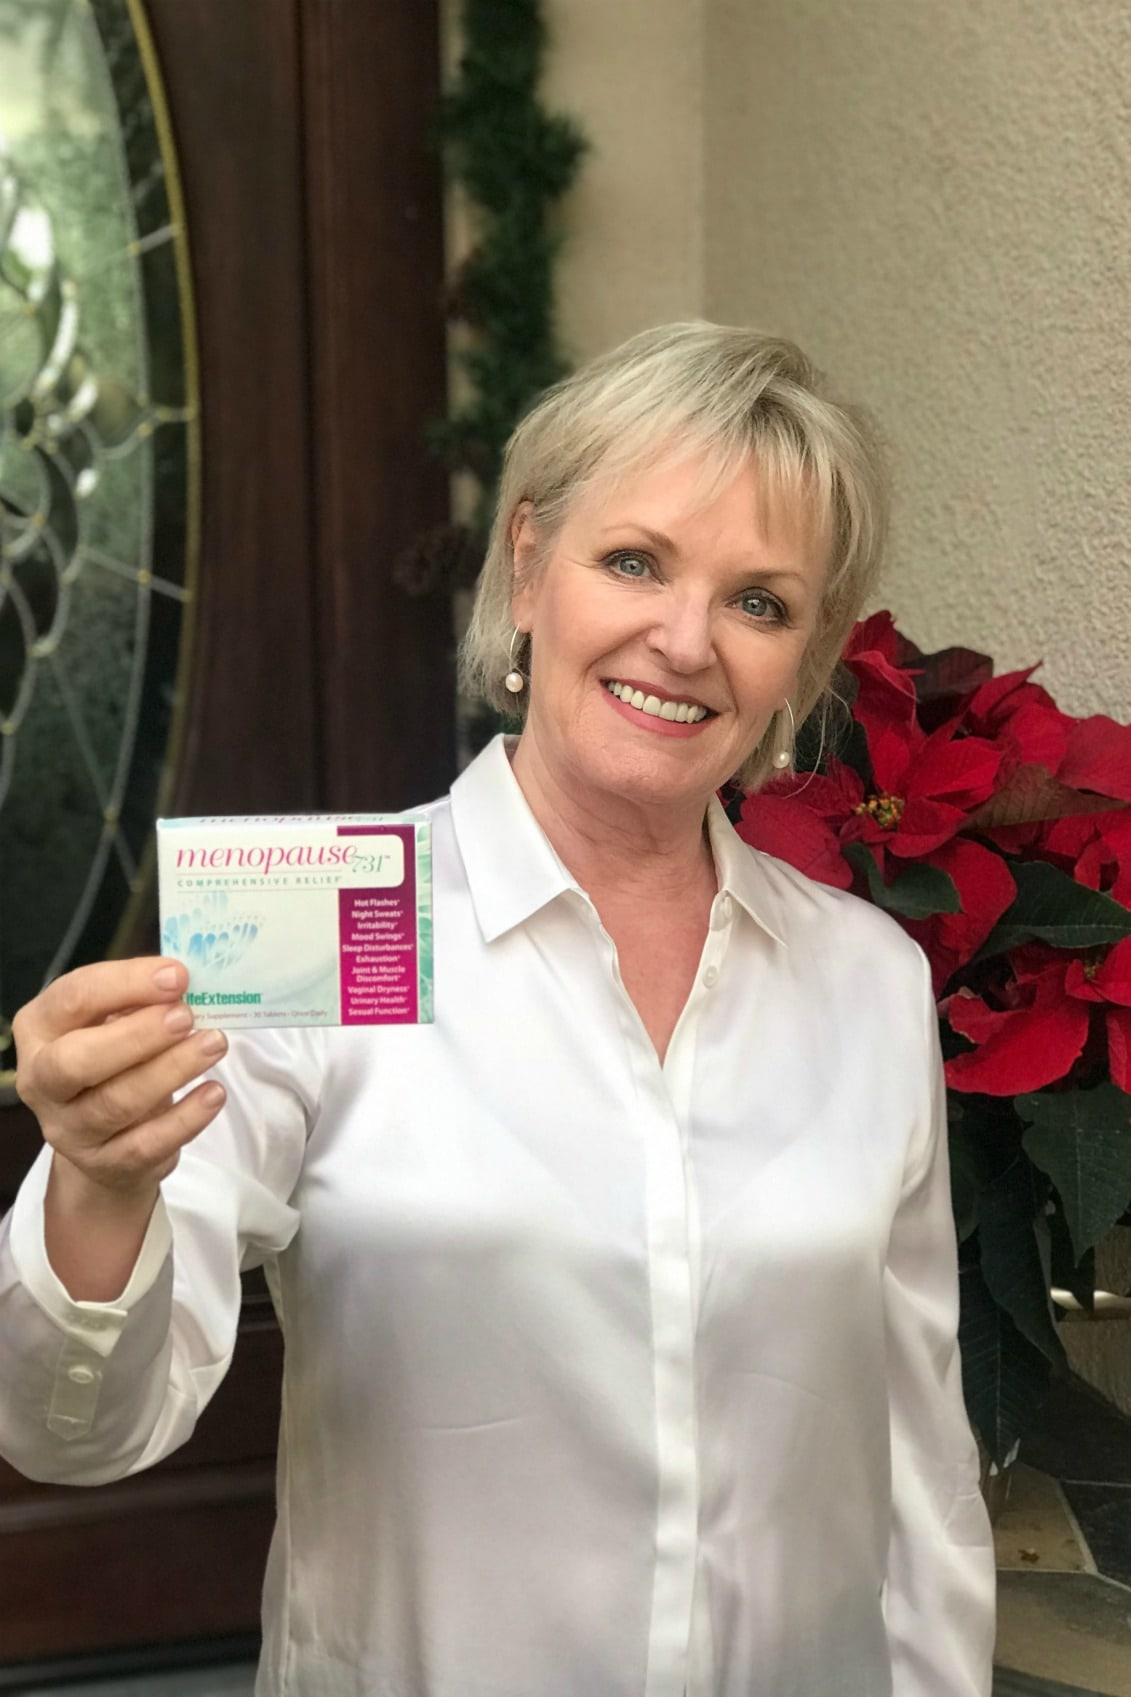 My Experience Taking Menopause 731™